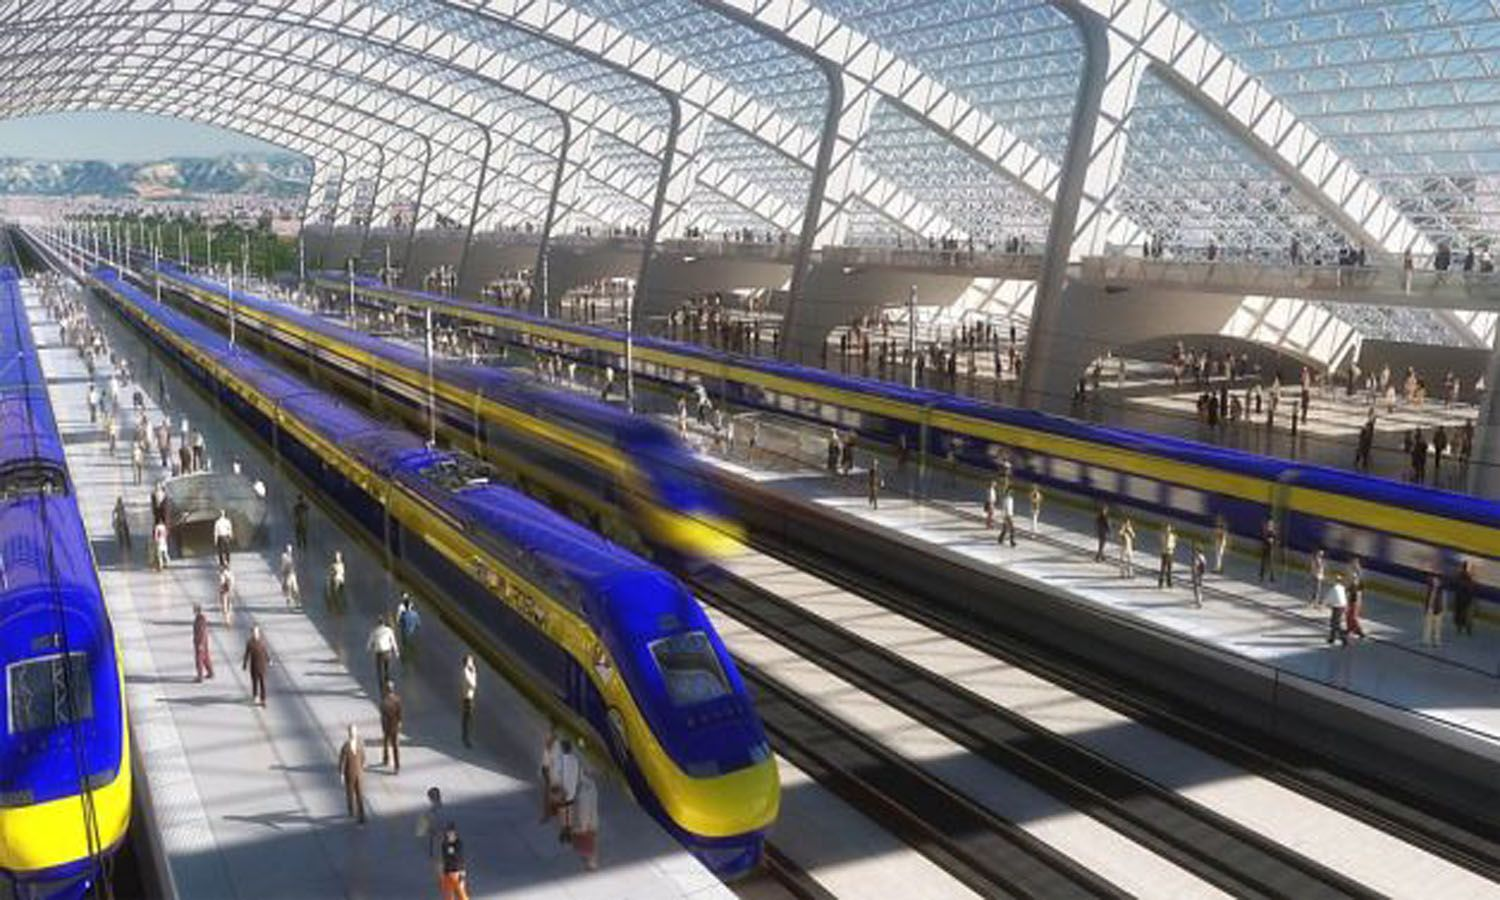 The California High-Speed Rail project is planned to replace several